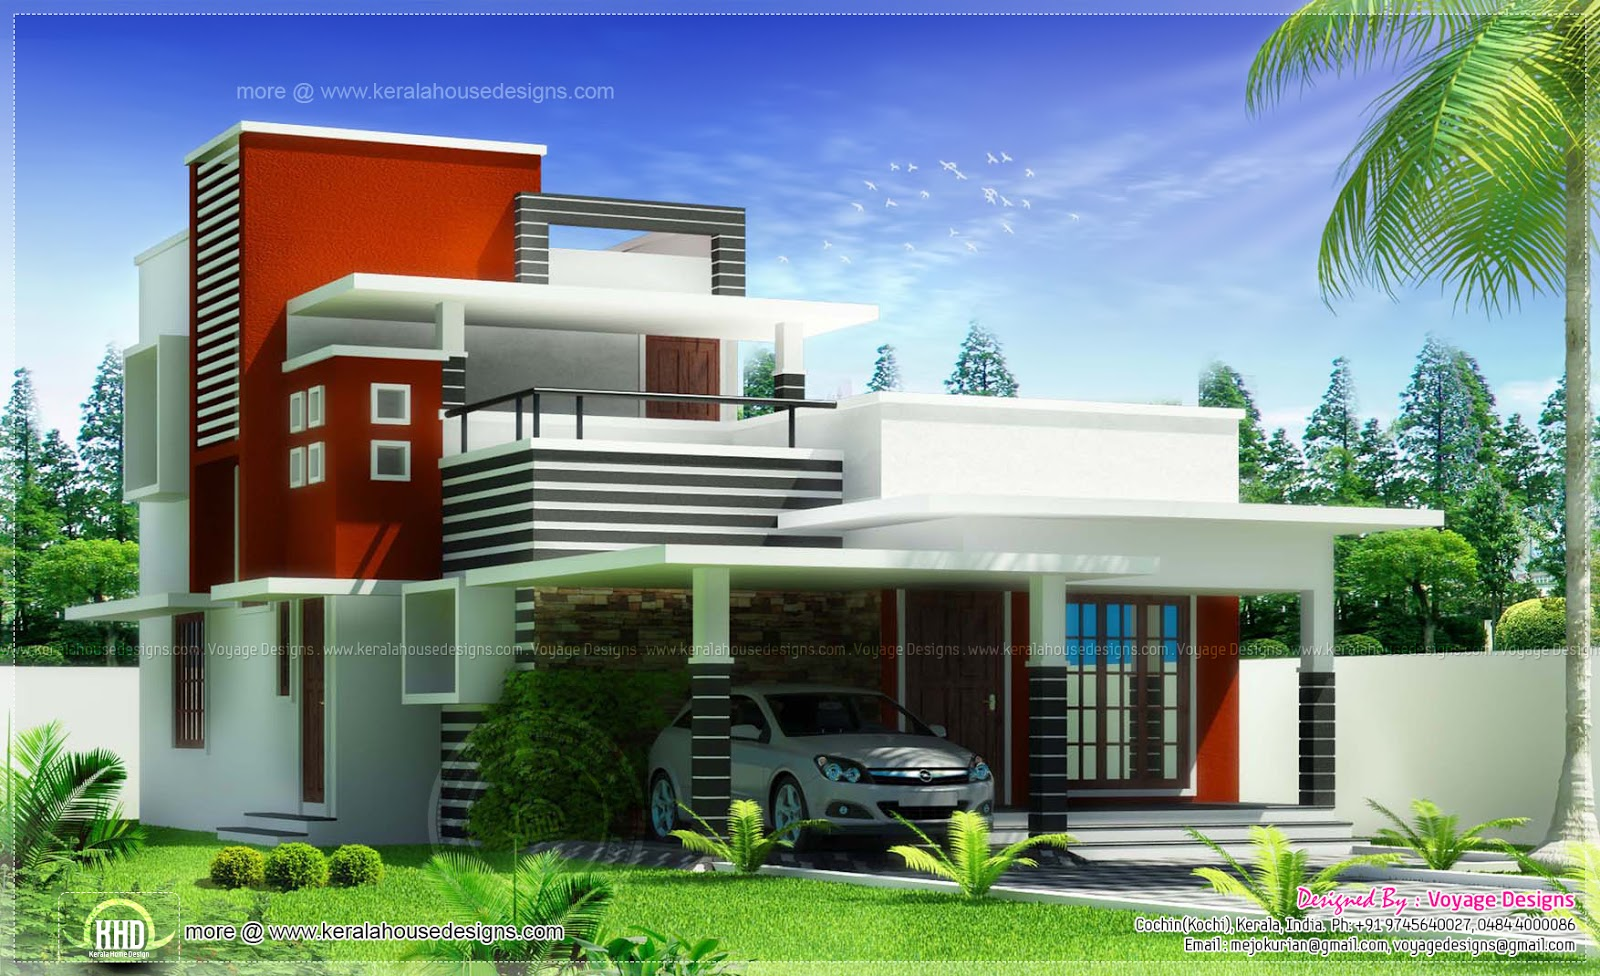 3 bed room contemporary style house home kerala plans Contemporary house style